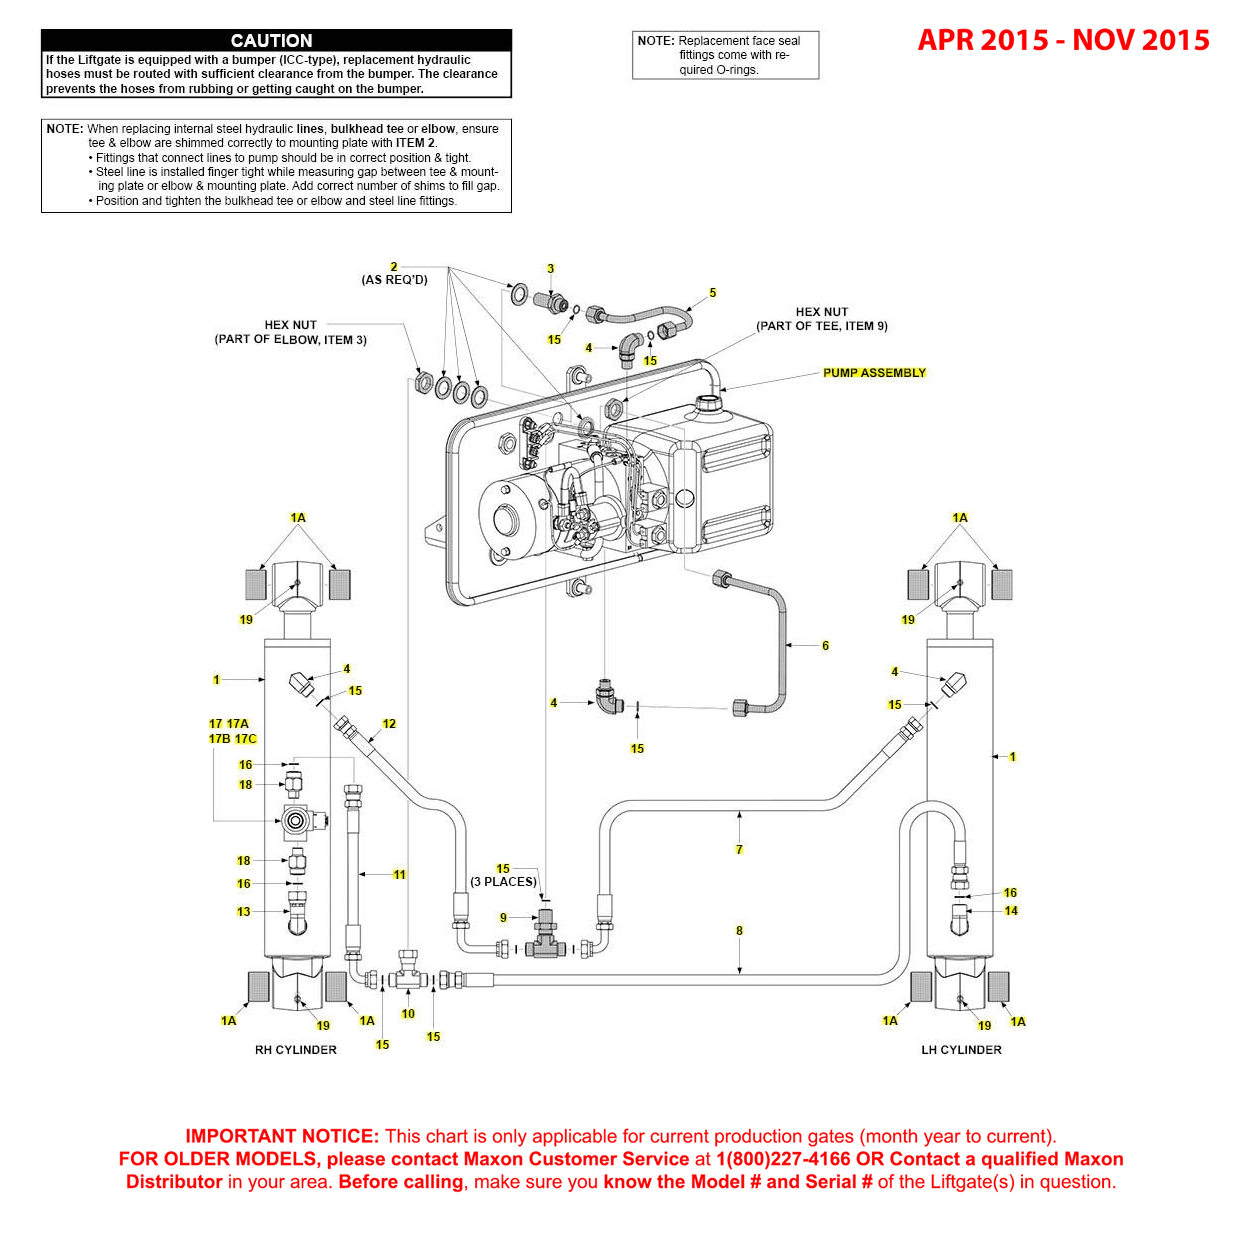 GPT (Apr 2015 - Nov 2015) Power Down Hydraulic Systems Diagram